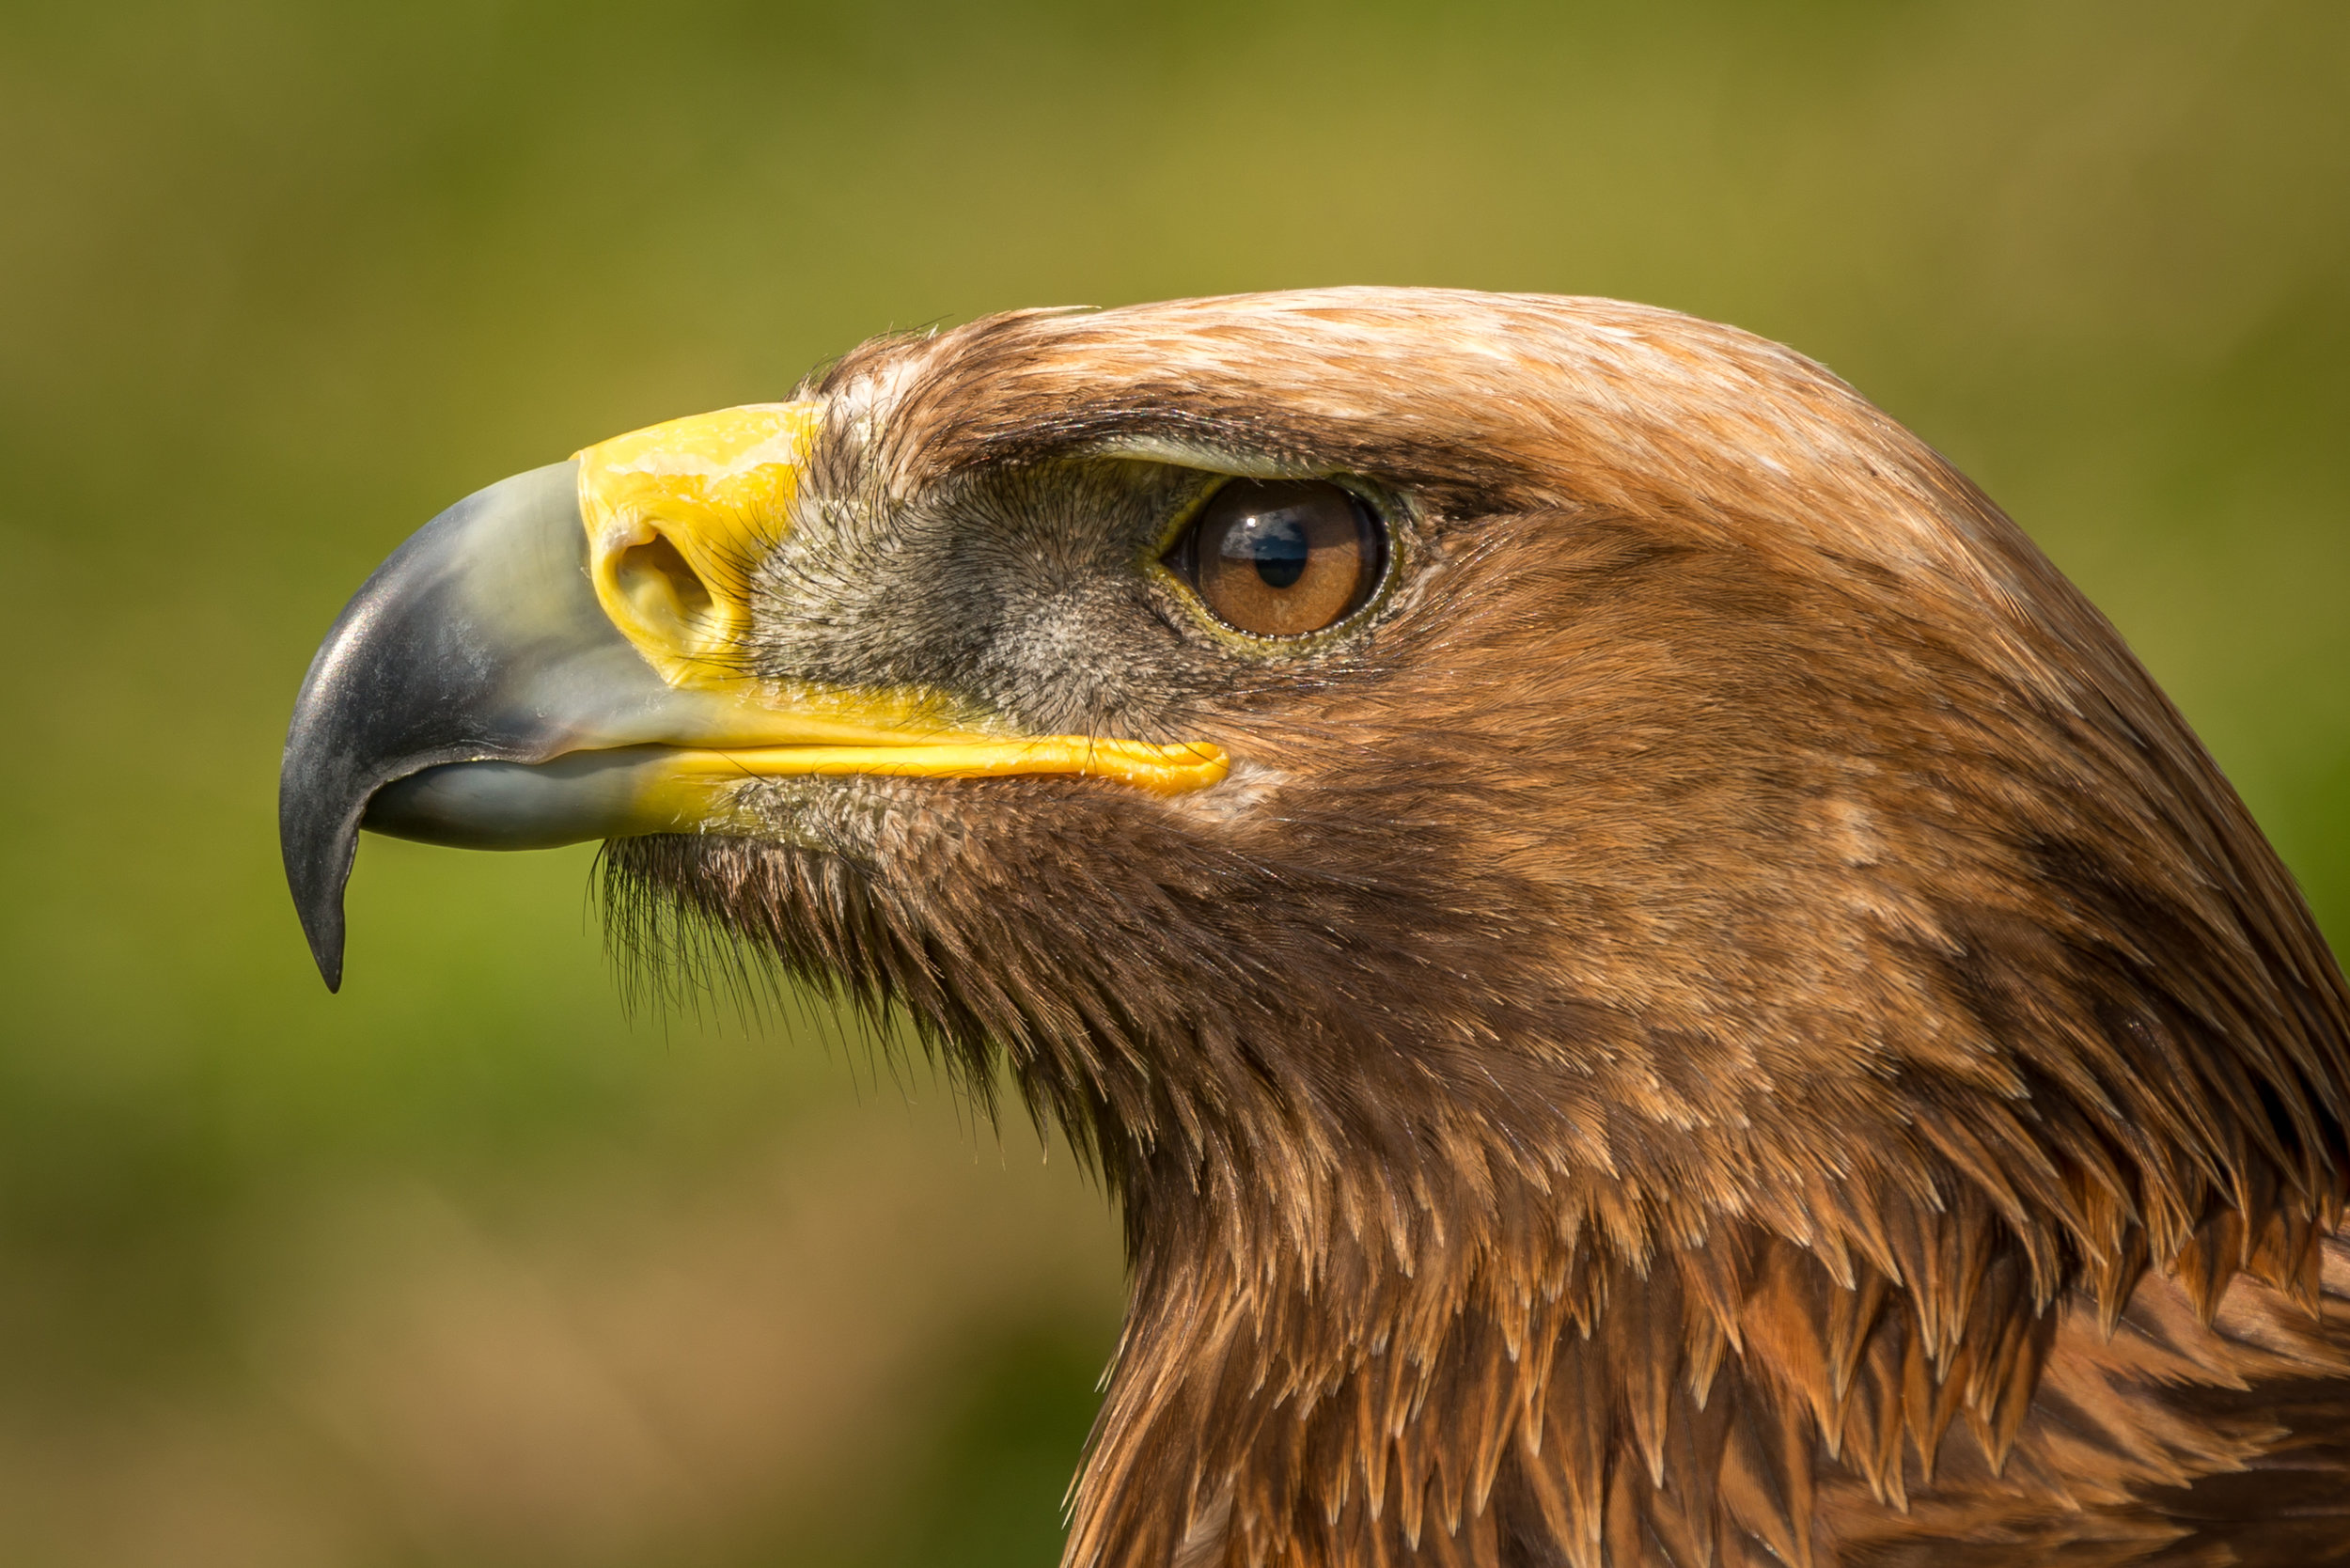 16: Close-up of golden eagle head with catchlight Verdict: Yes, good head shot. Not mind-blowing and not one of your strongest images.